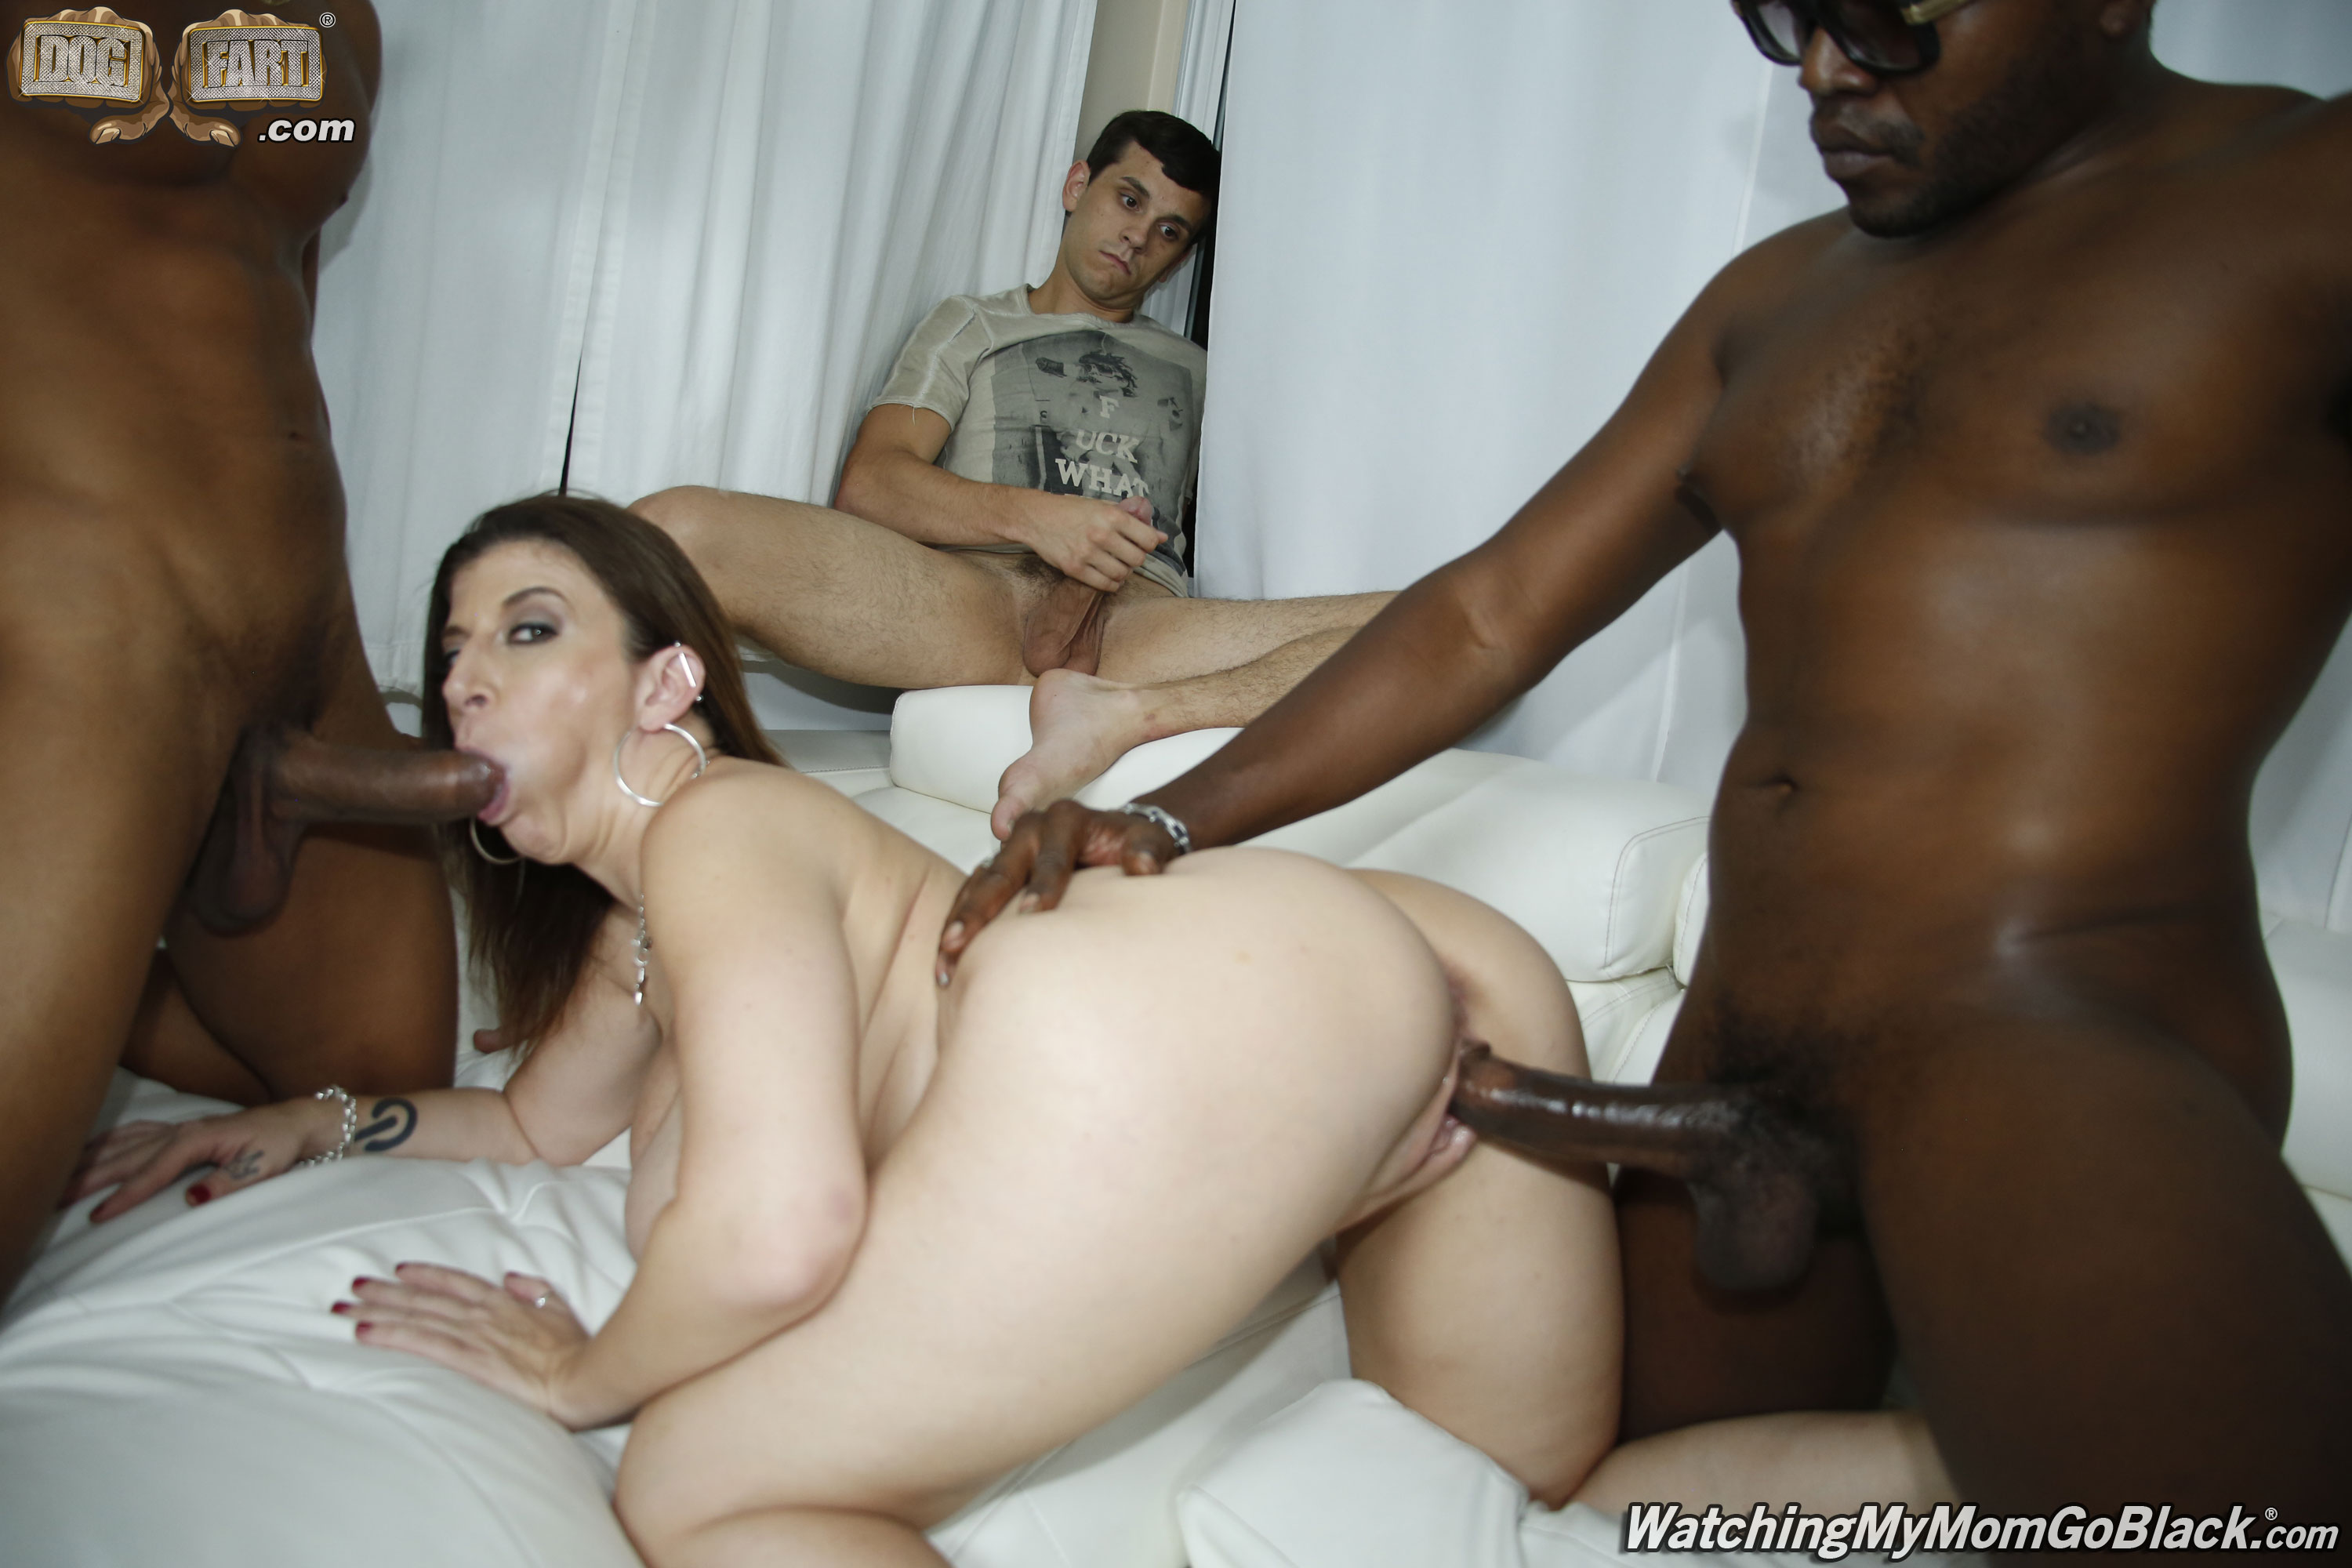 Femdom tied up and fucked by men